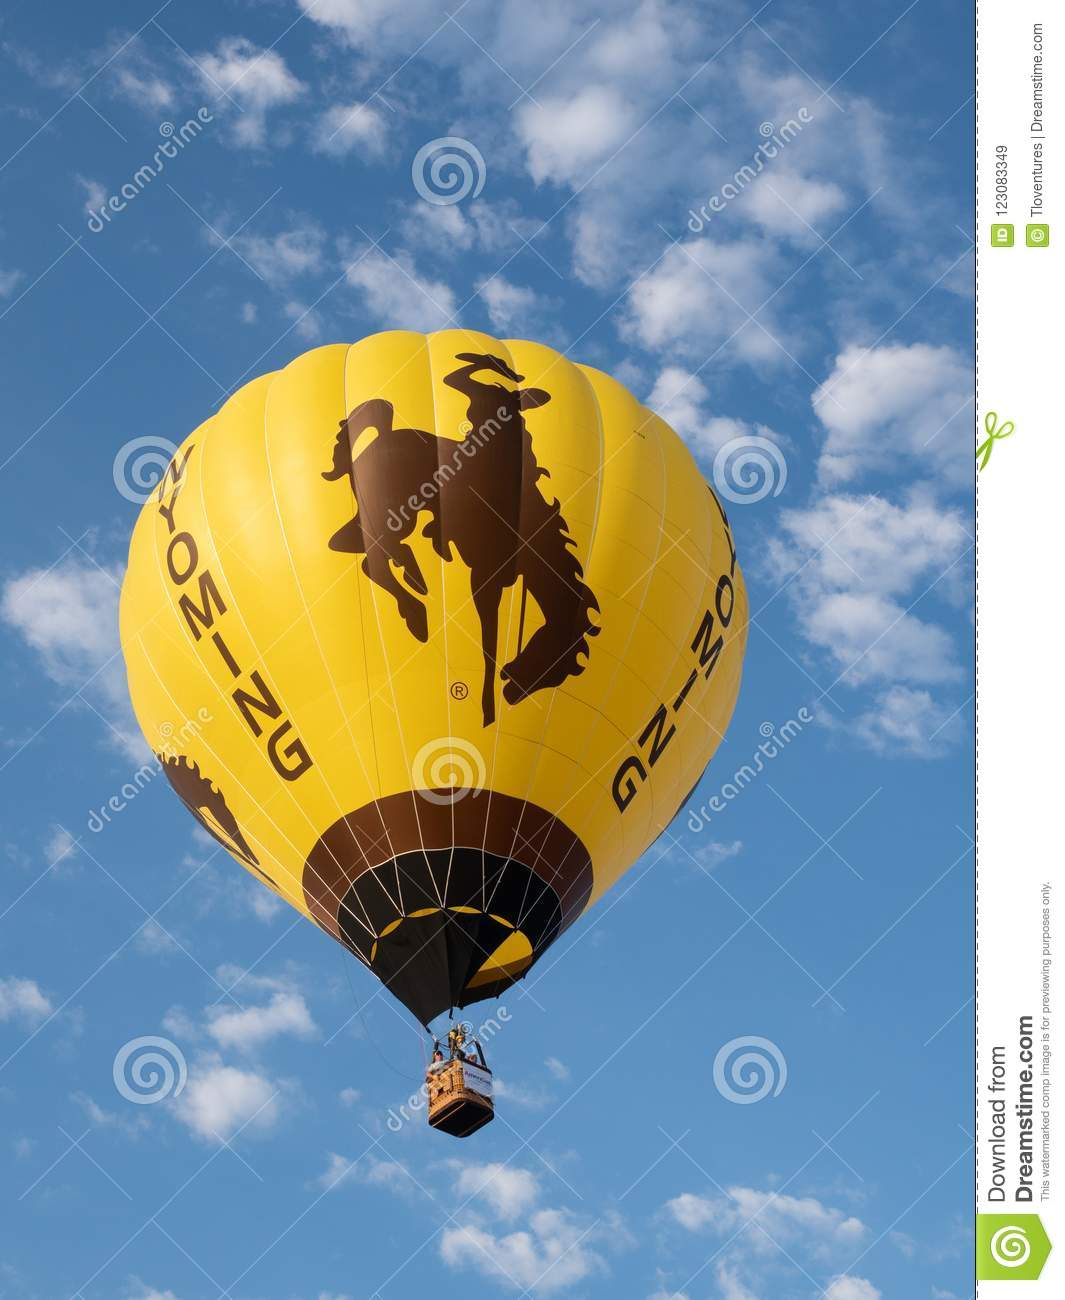 A Wyoming Hot Air Balloon With Bucking Bronco Flying At Big Sky